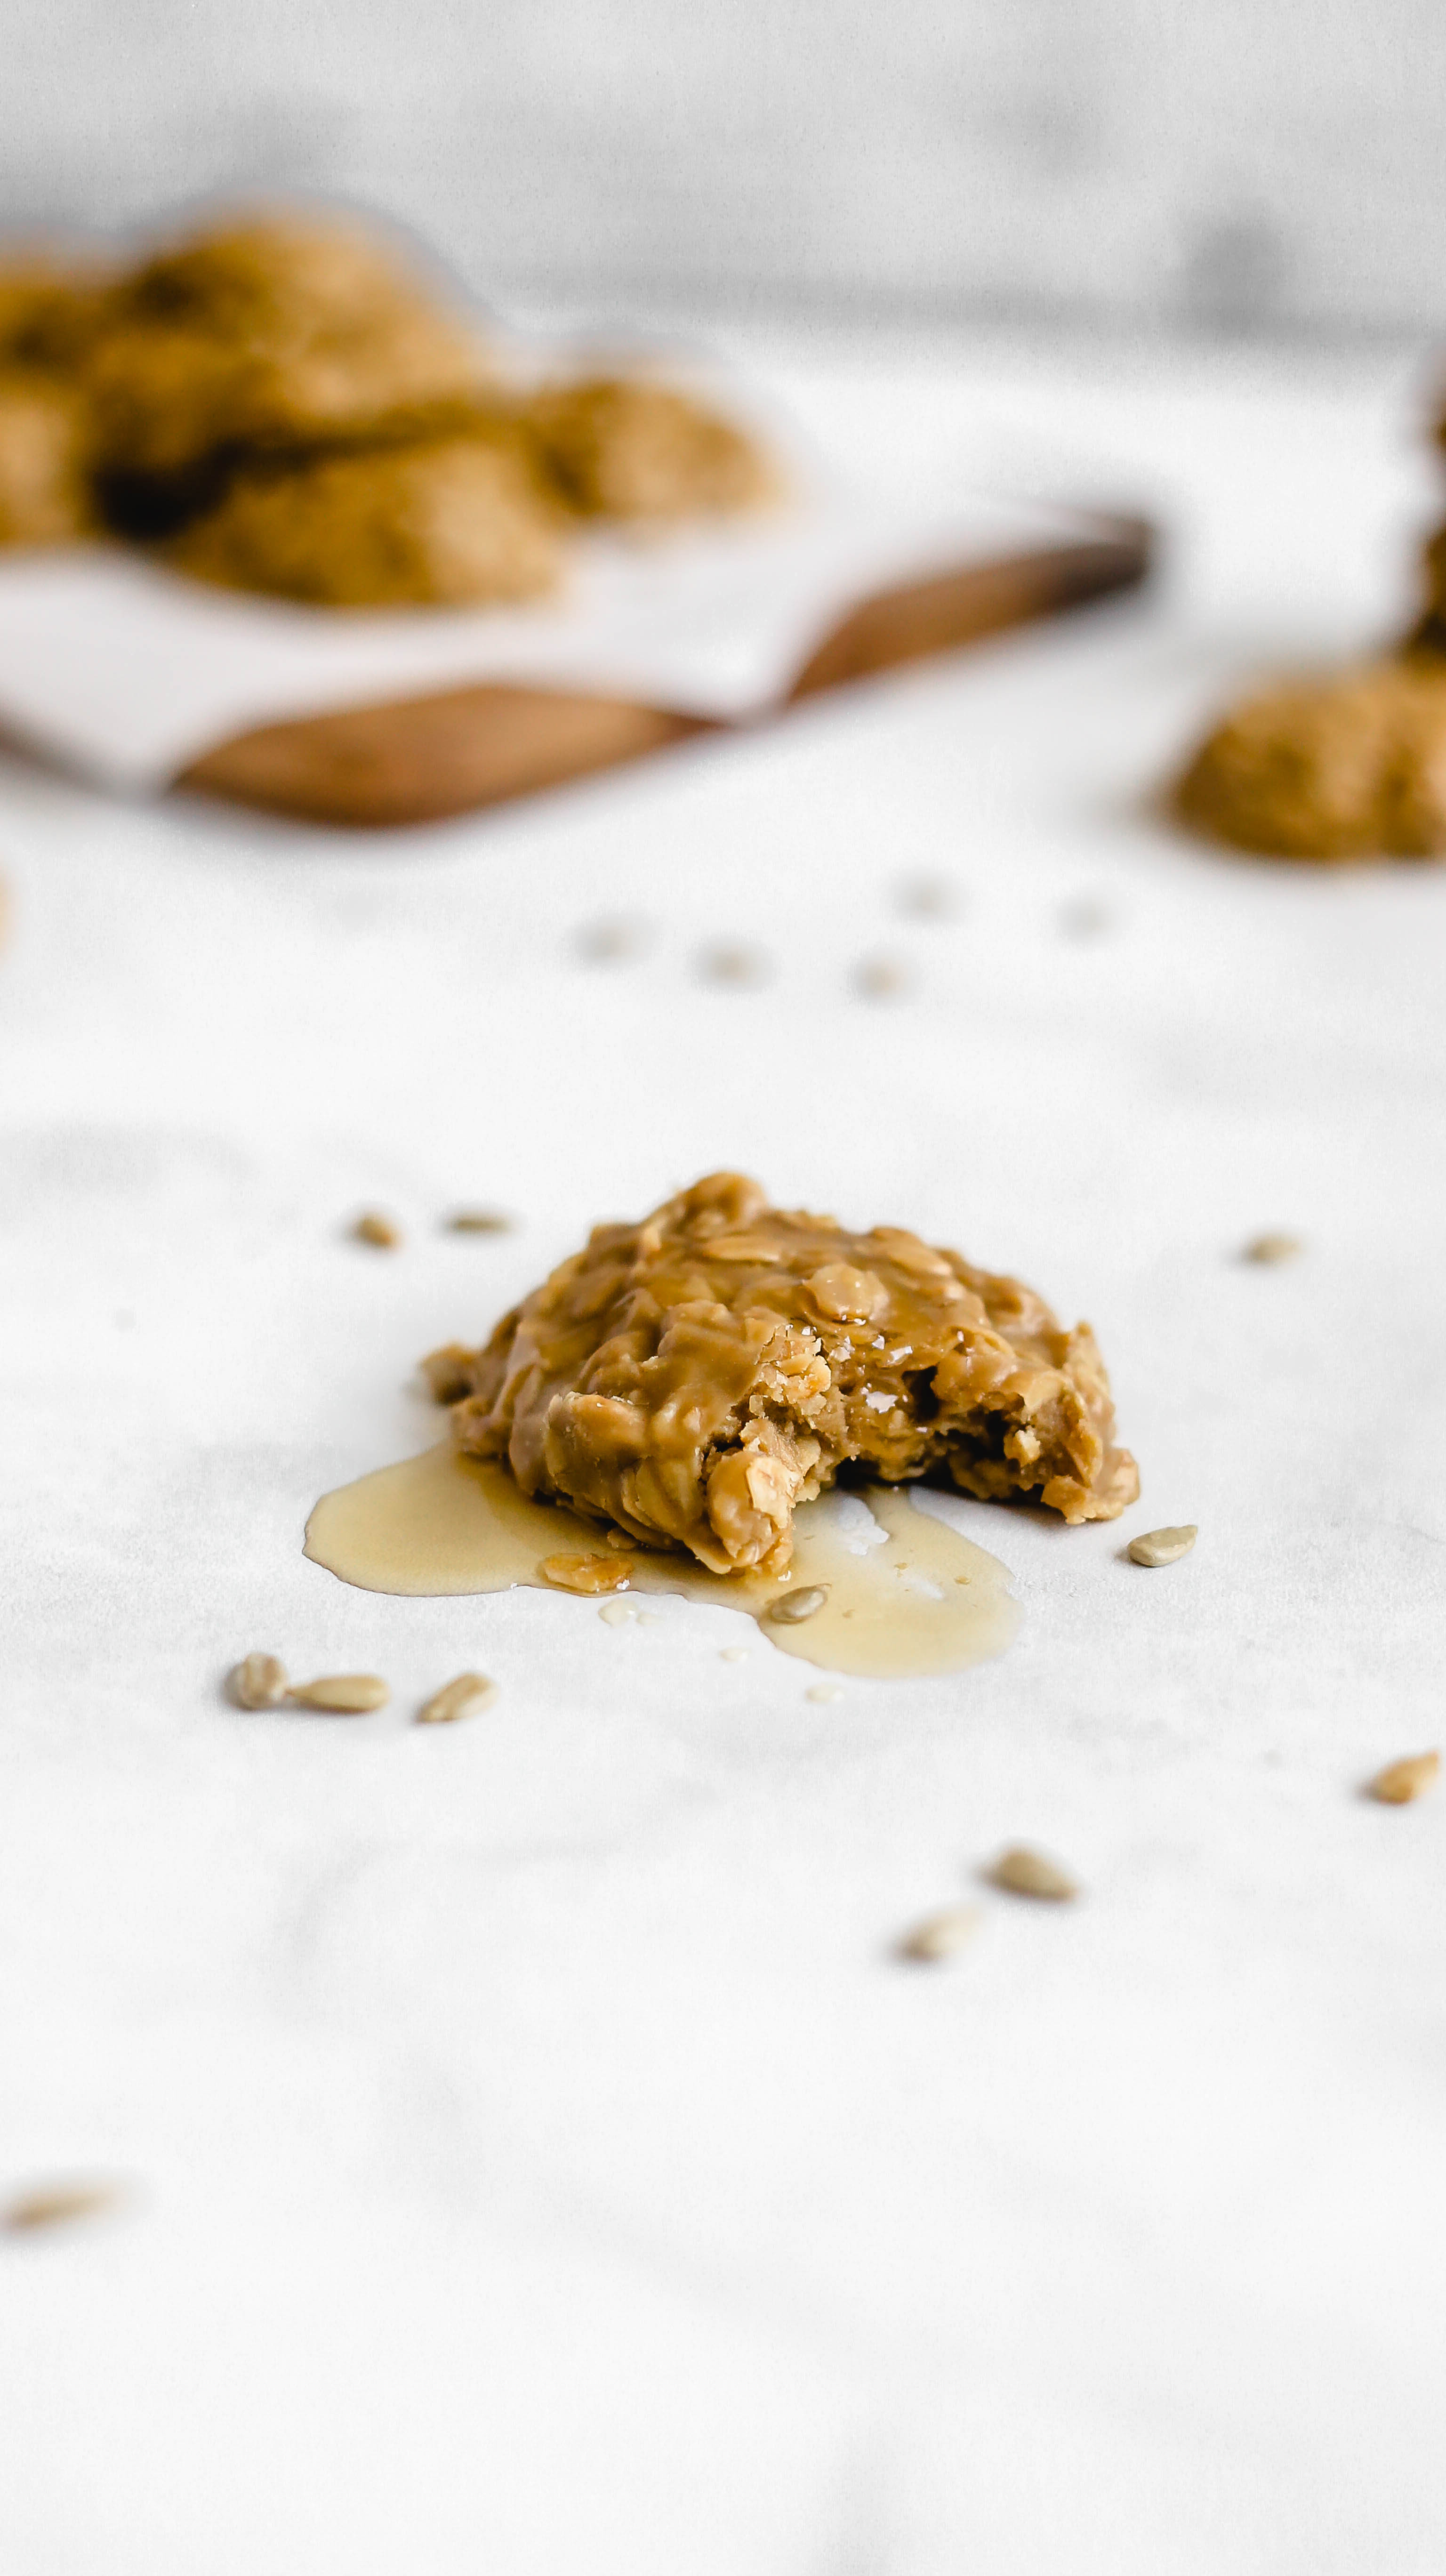 a sunflower seed butter cookie with a bite taken out